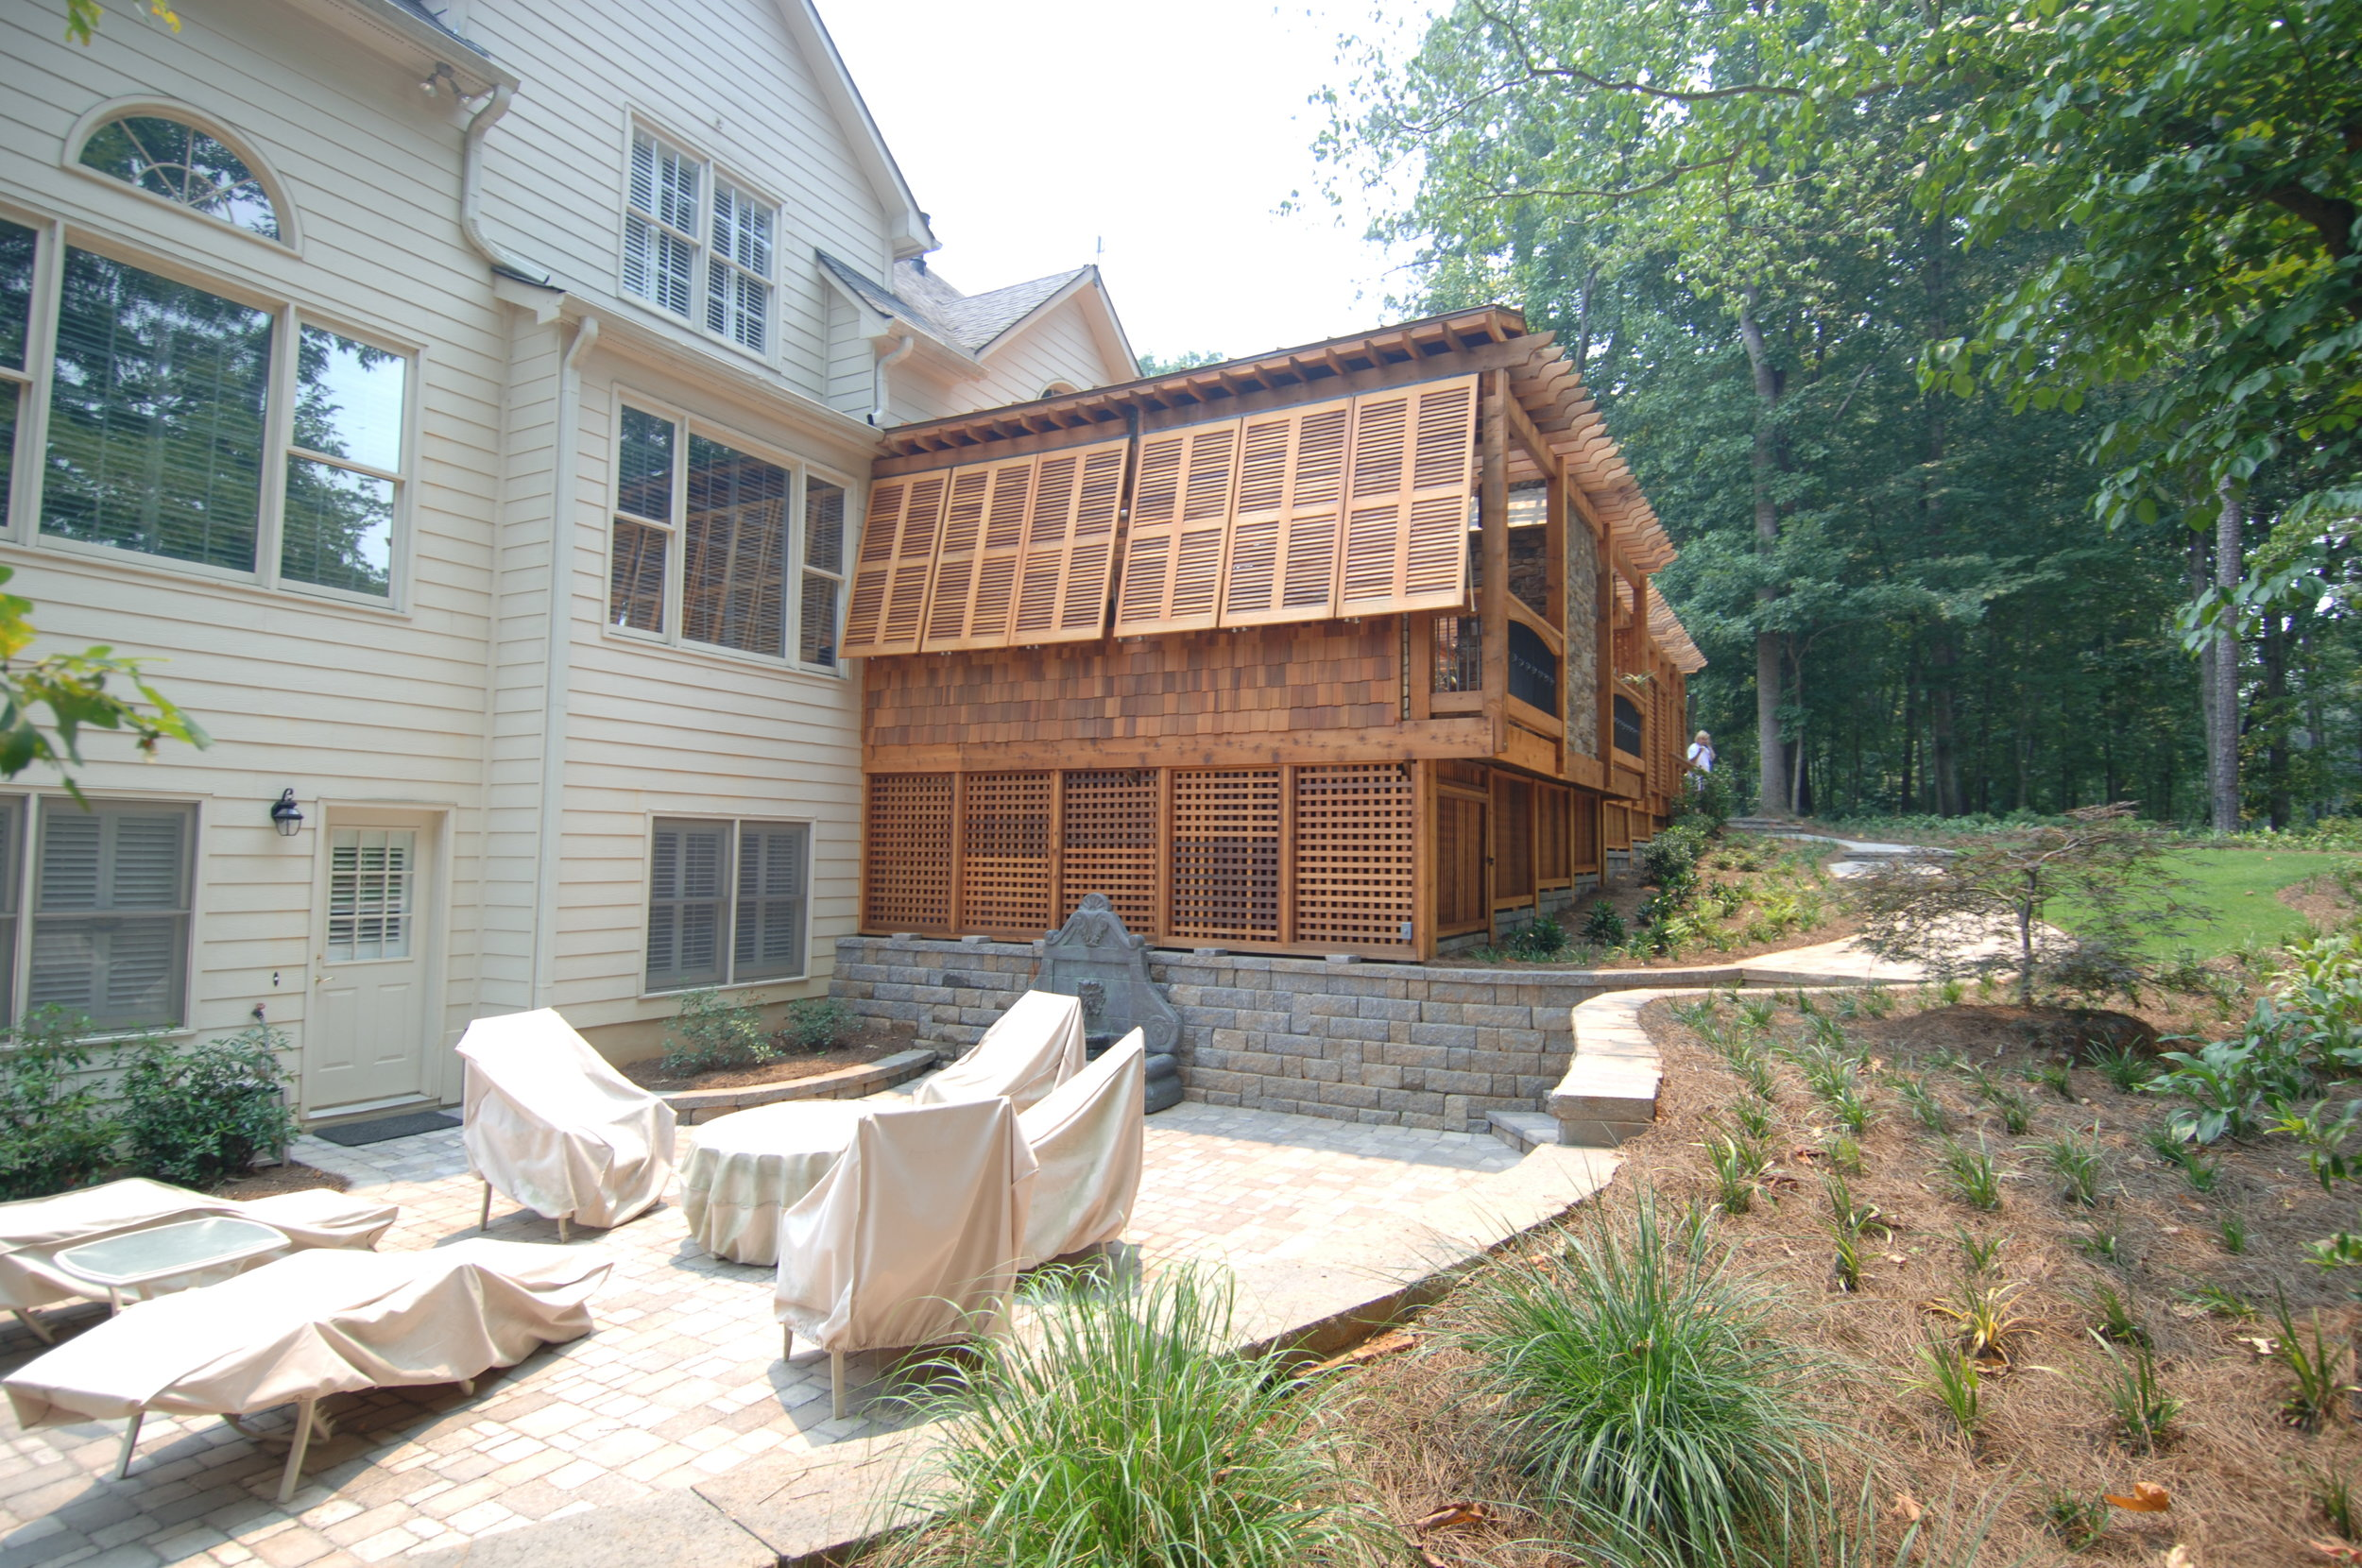 M Deck Pictures (77).JPG